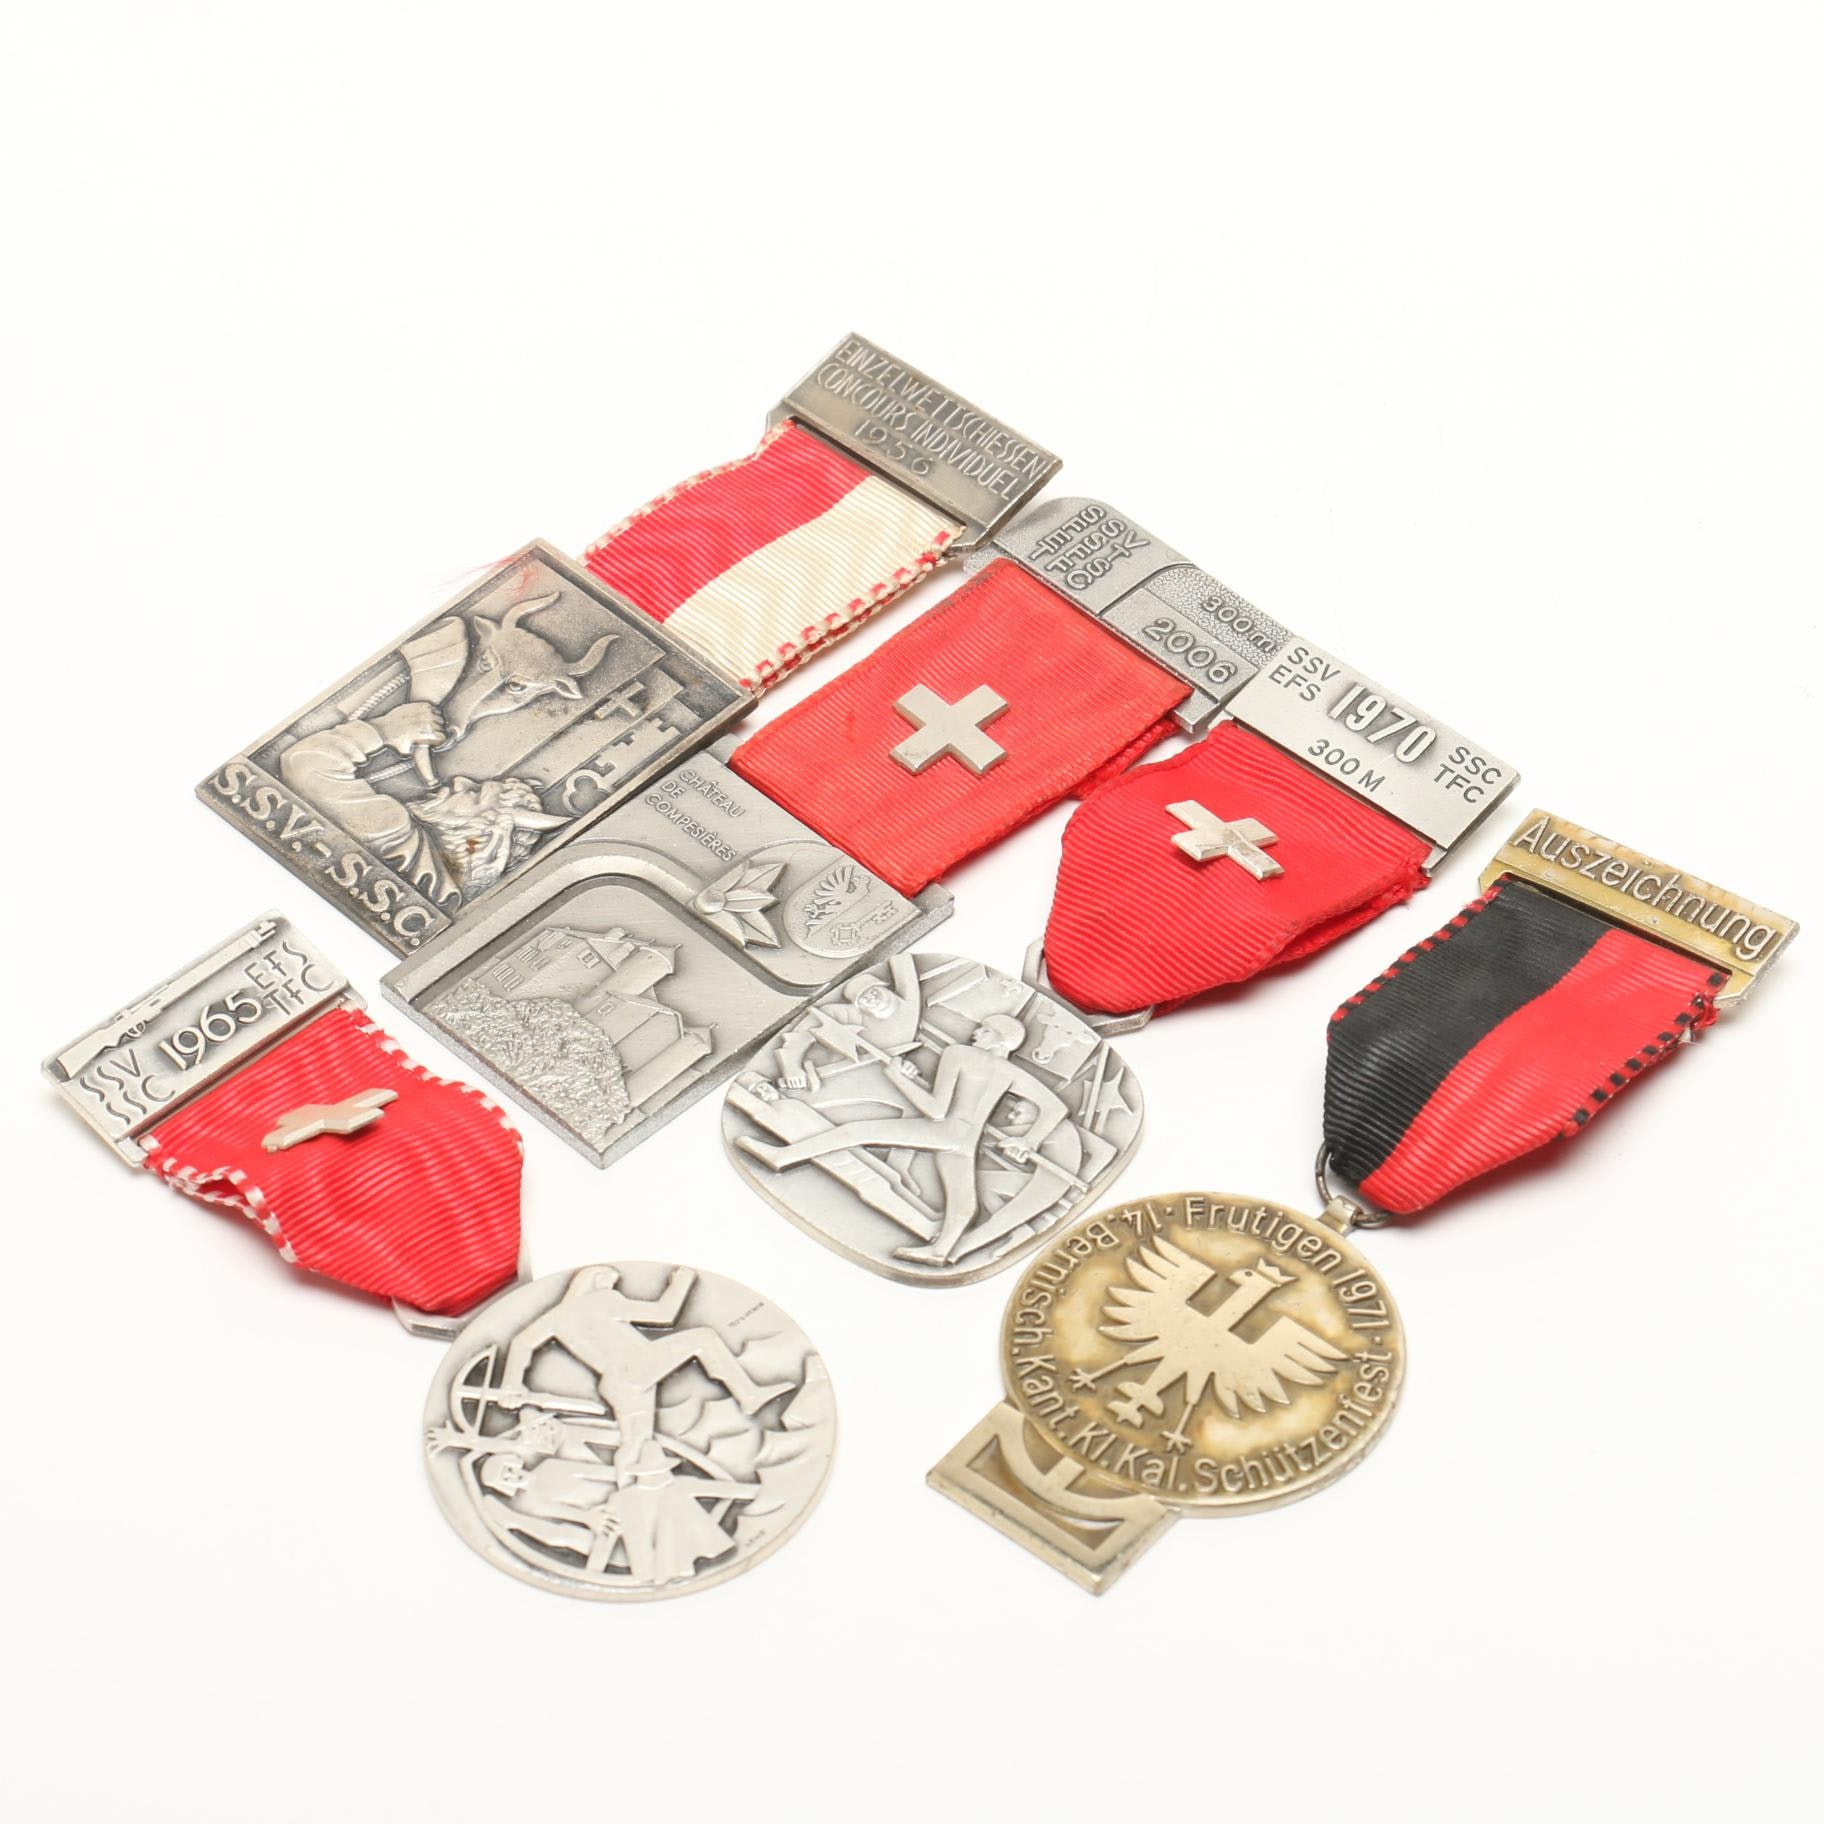 1960s-1970s Swiss Participation Presentation Medals